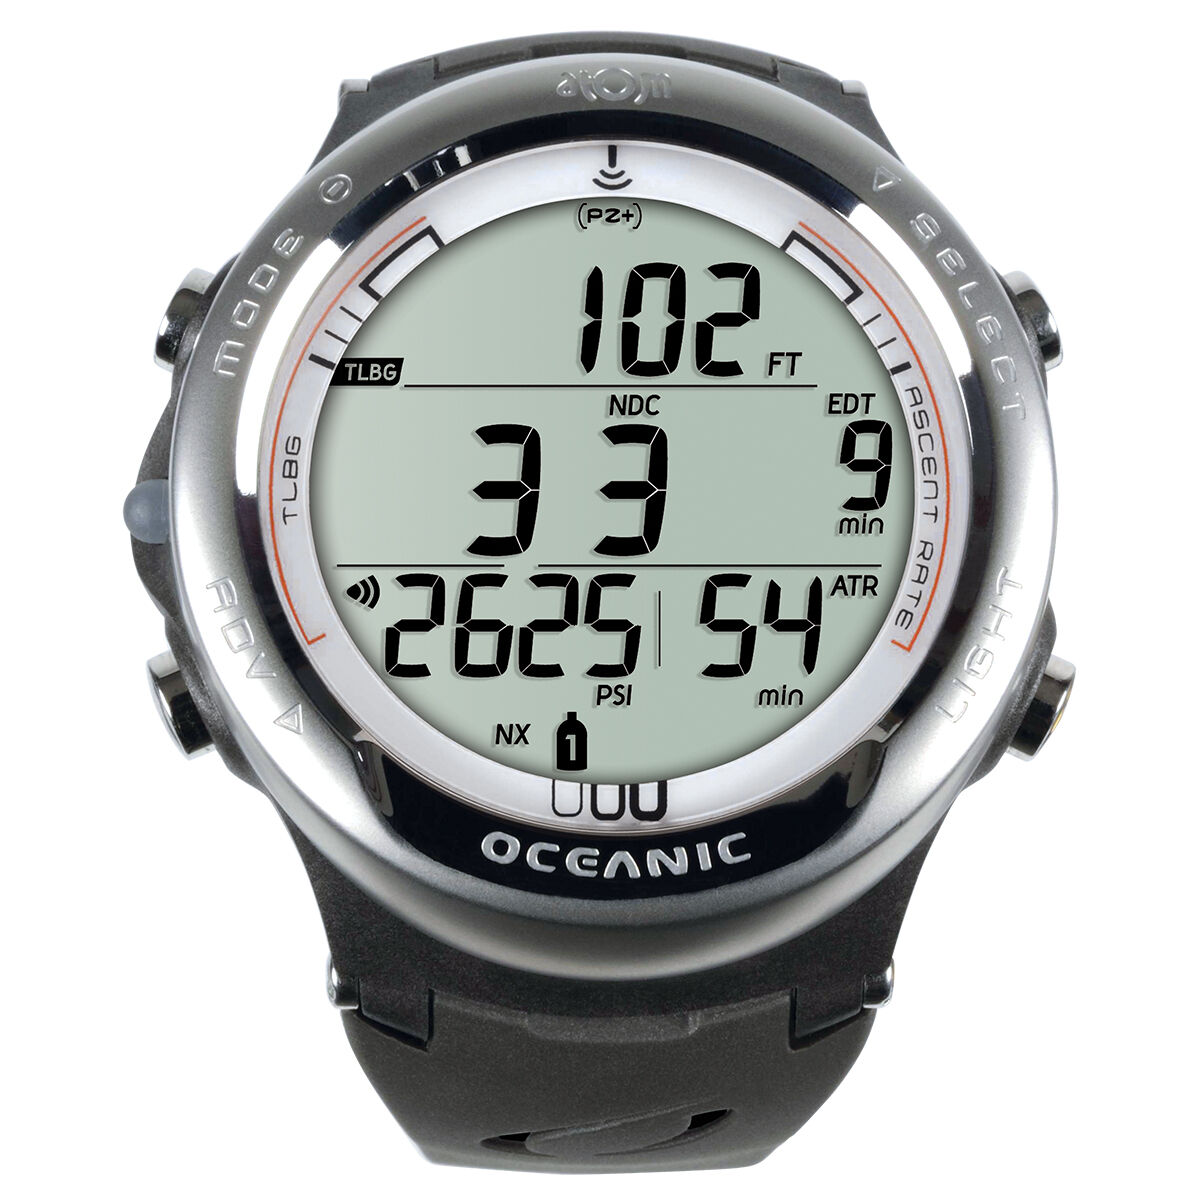 Oceanic Atom 3.1 Dive Computer w Transmitter and USB Cable Titanium/Weiß